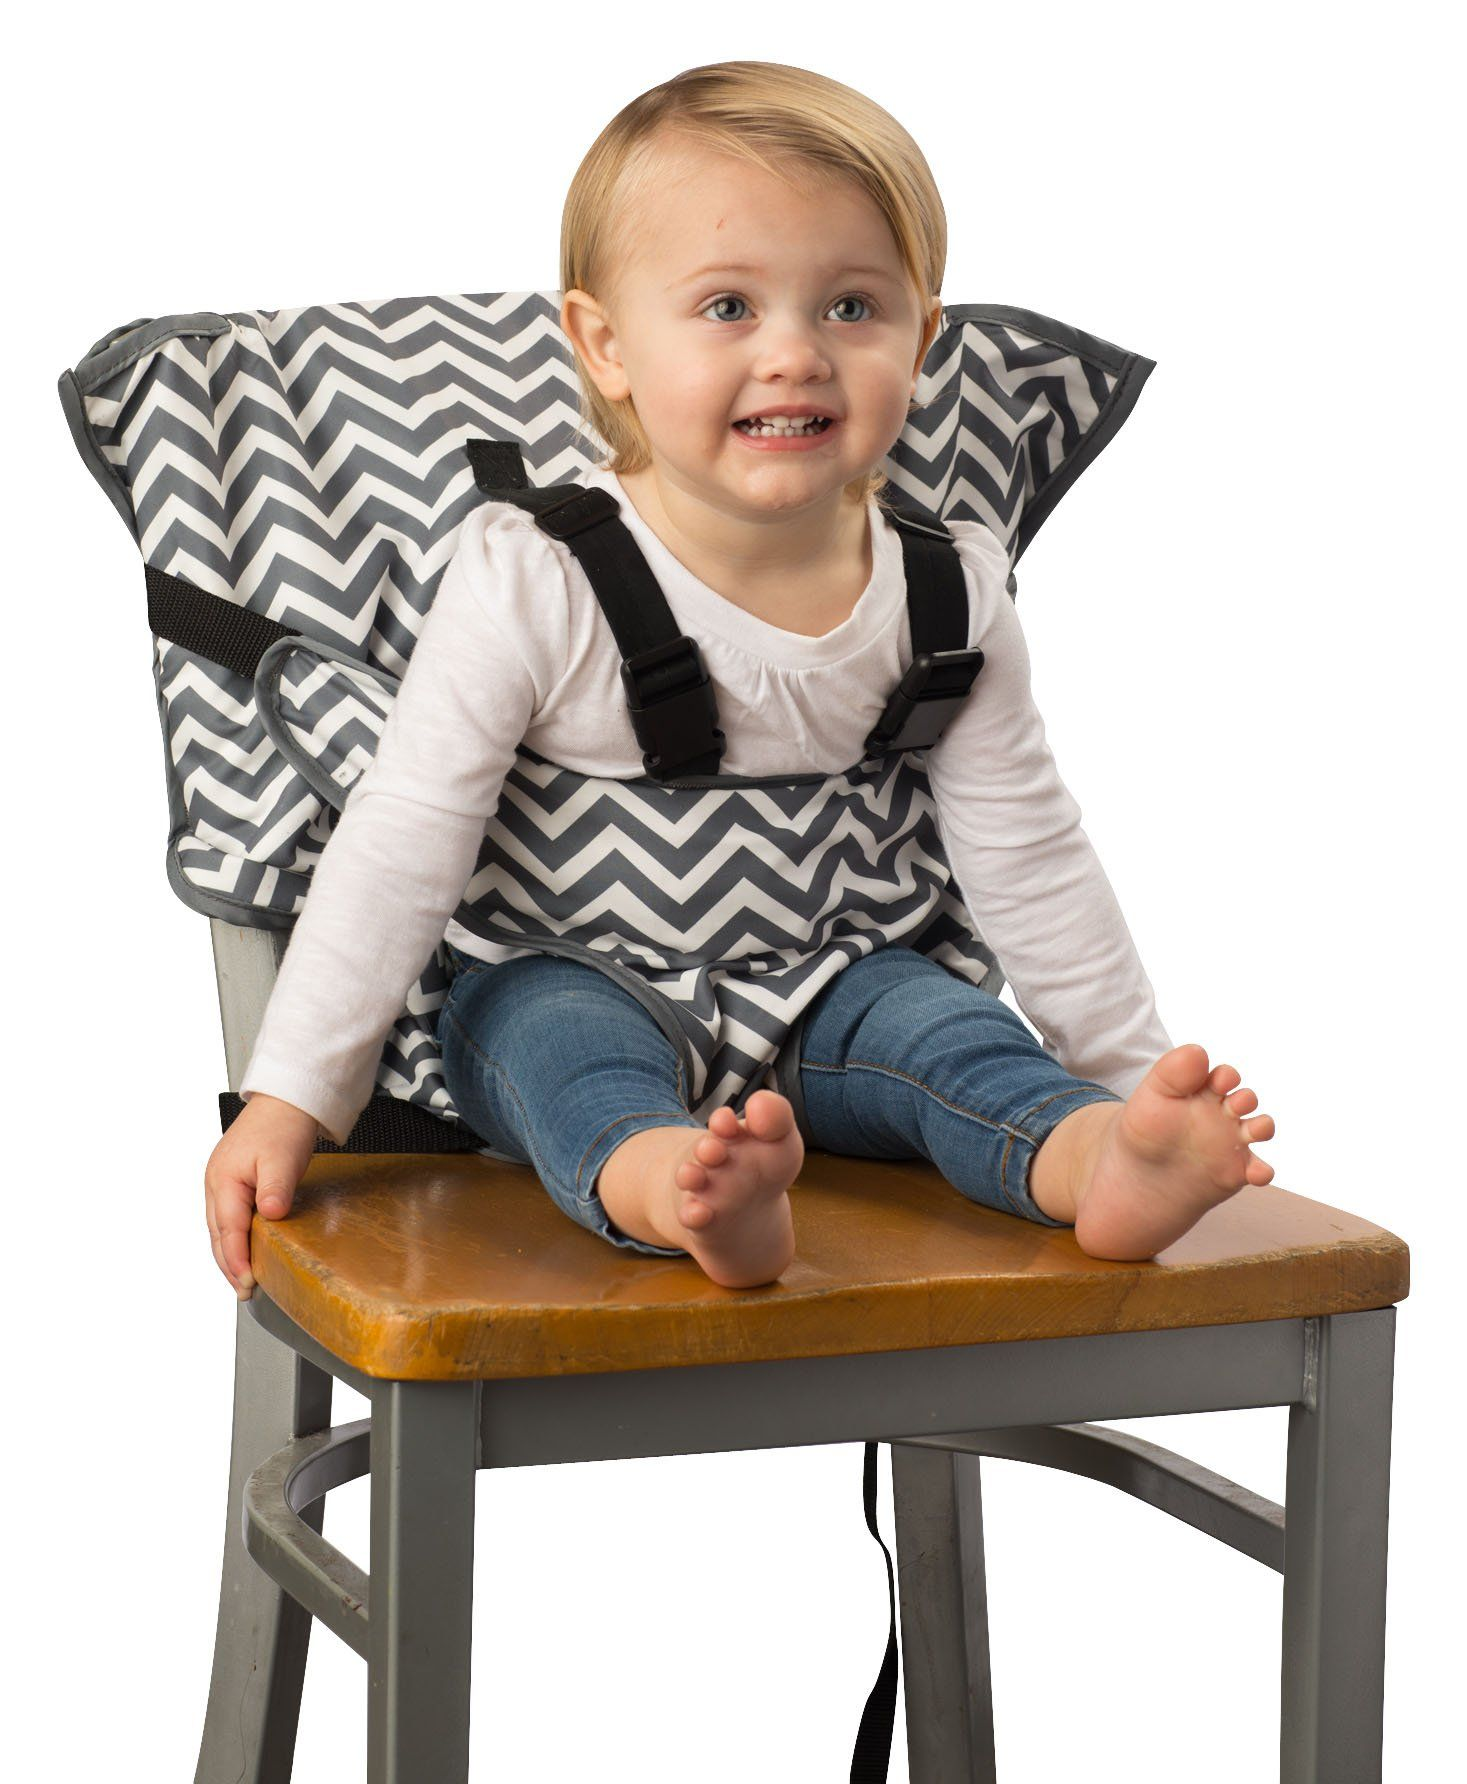 Charmant Cozy Cover Easy Seat U2013 Portable Travel High Chair And Safety Seat For  Infants And Toddlers (Chevron). Simple And Safe Option For Allowing Your  Child To Sit ...